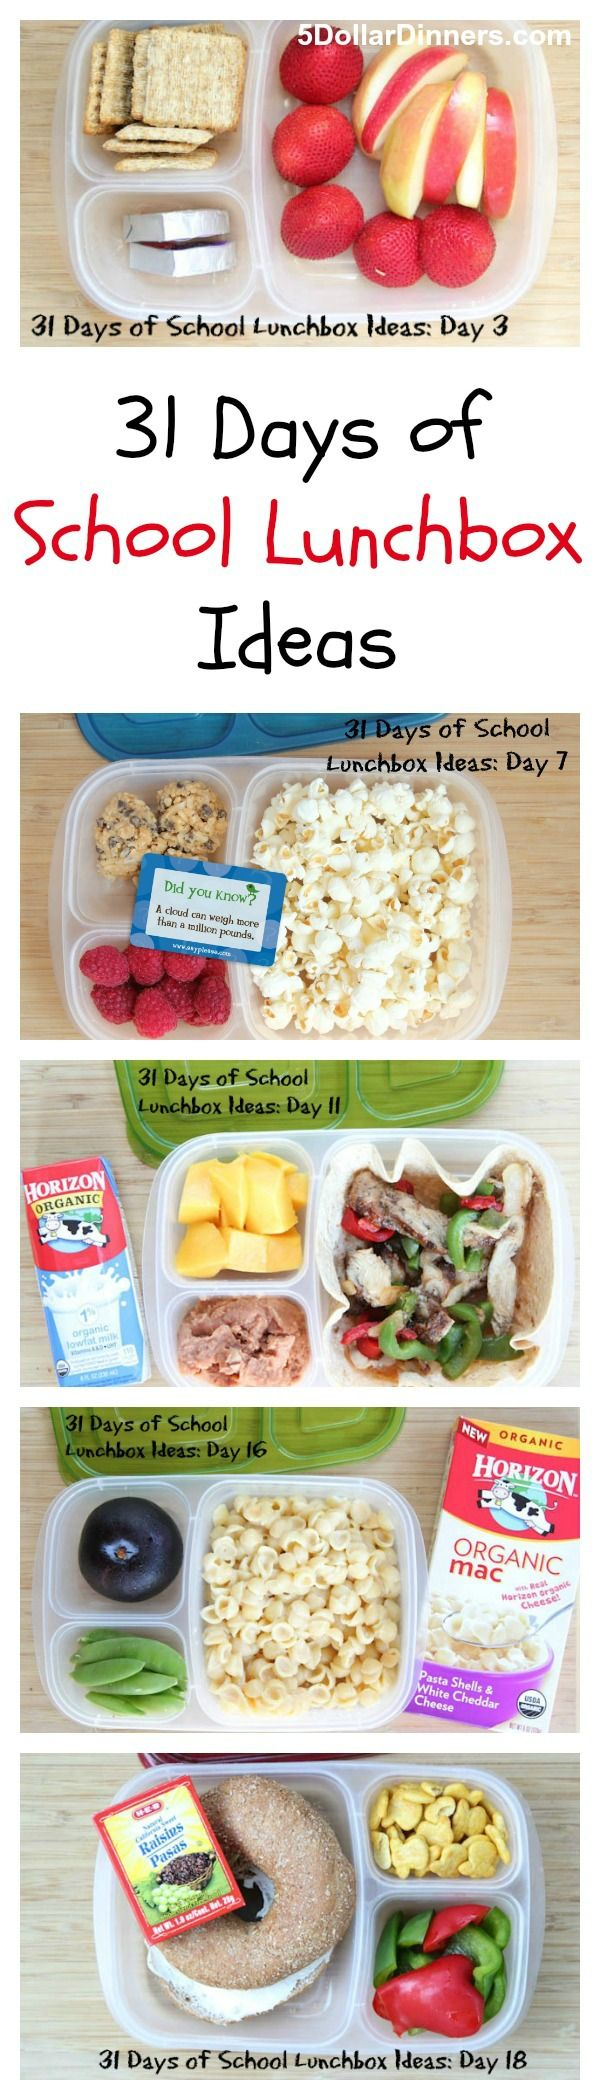 Get inspired with delicious and innovative ideas to pack in your lunches this school year!